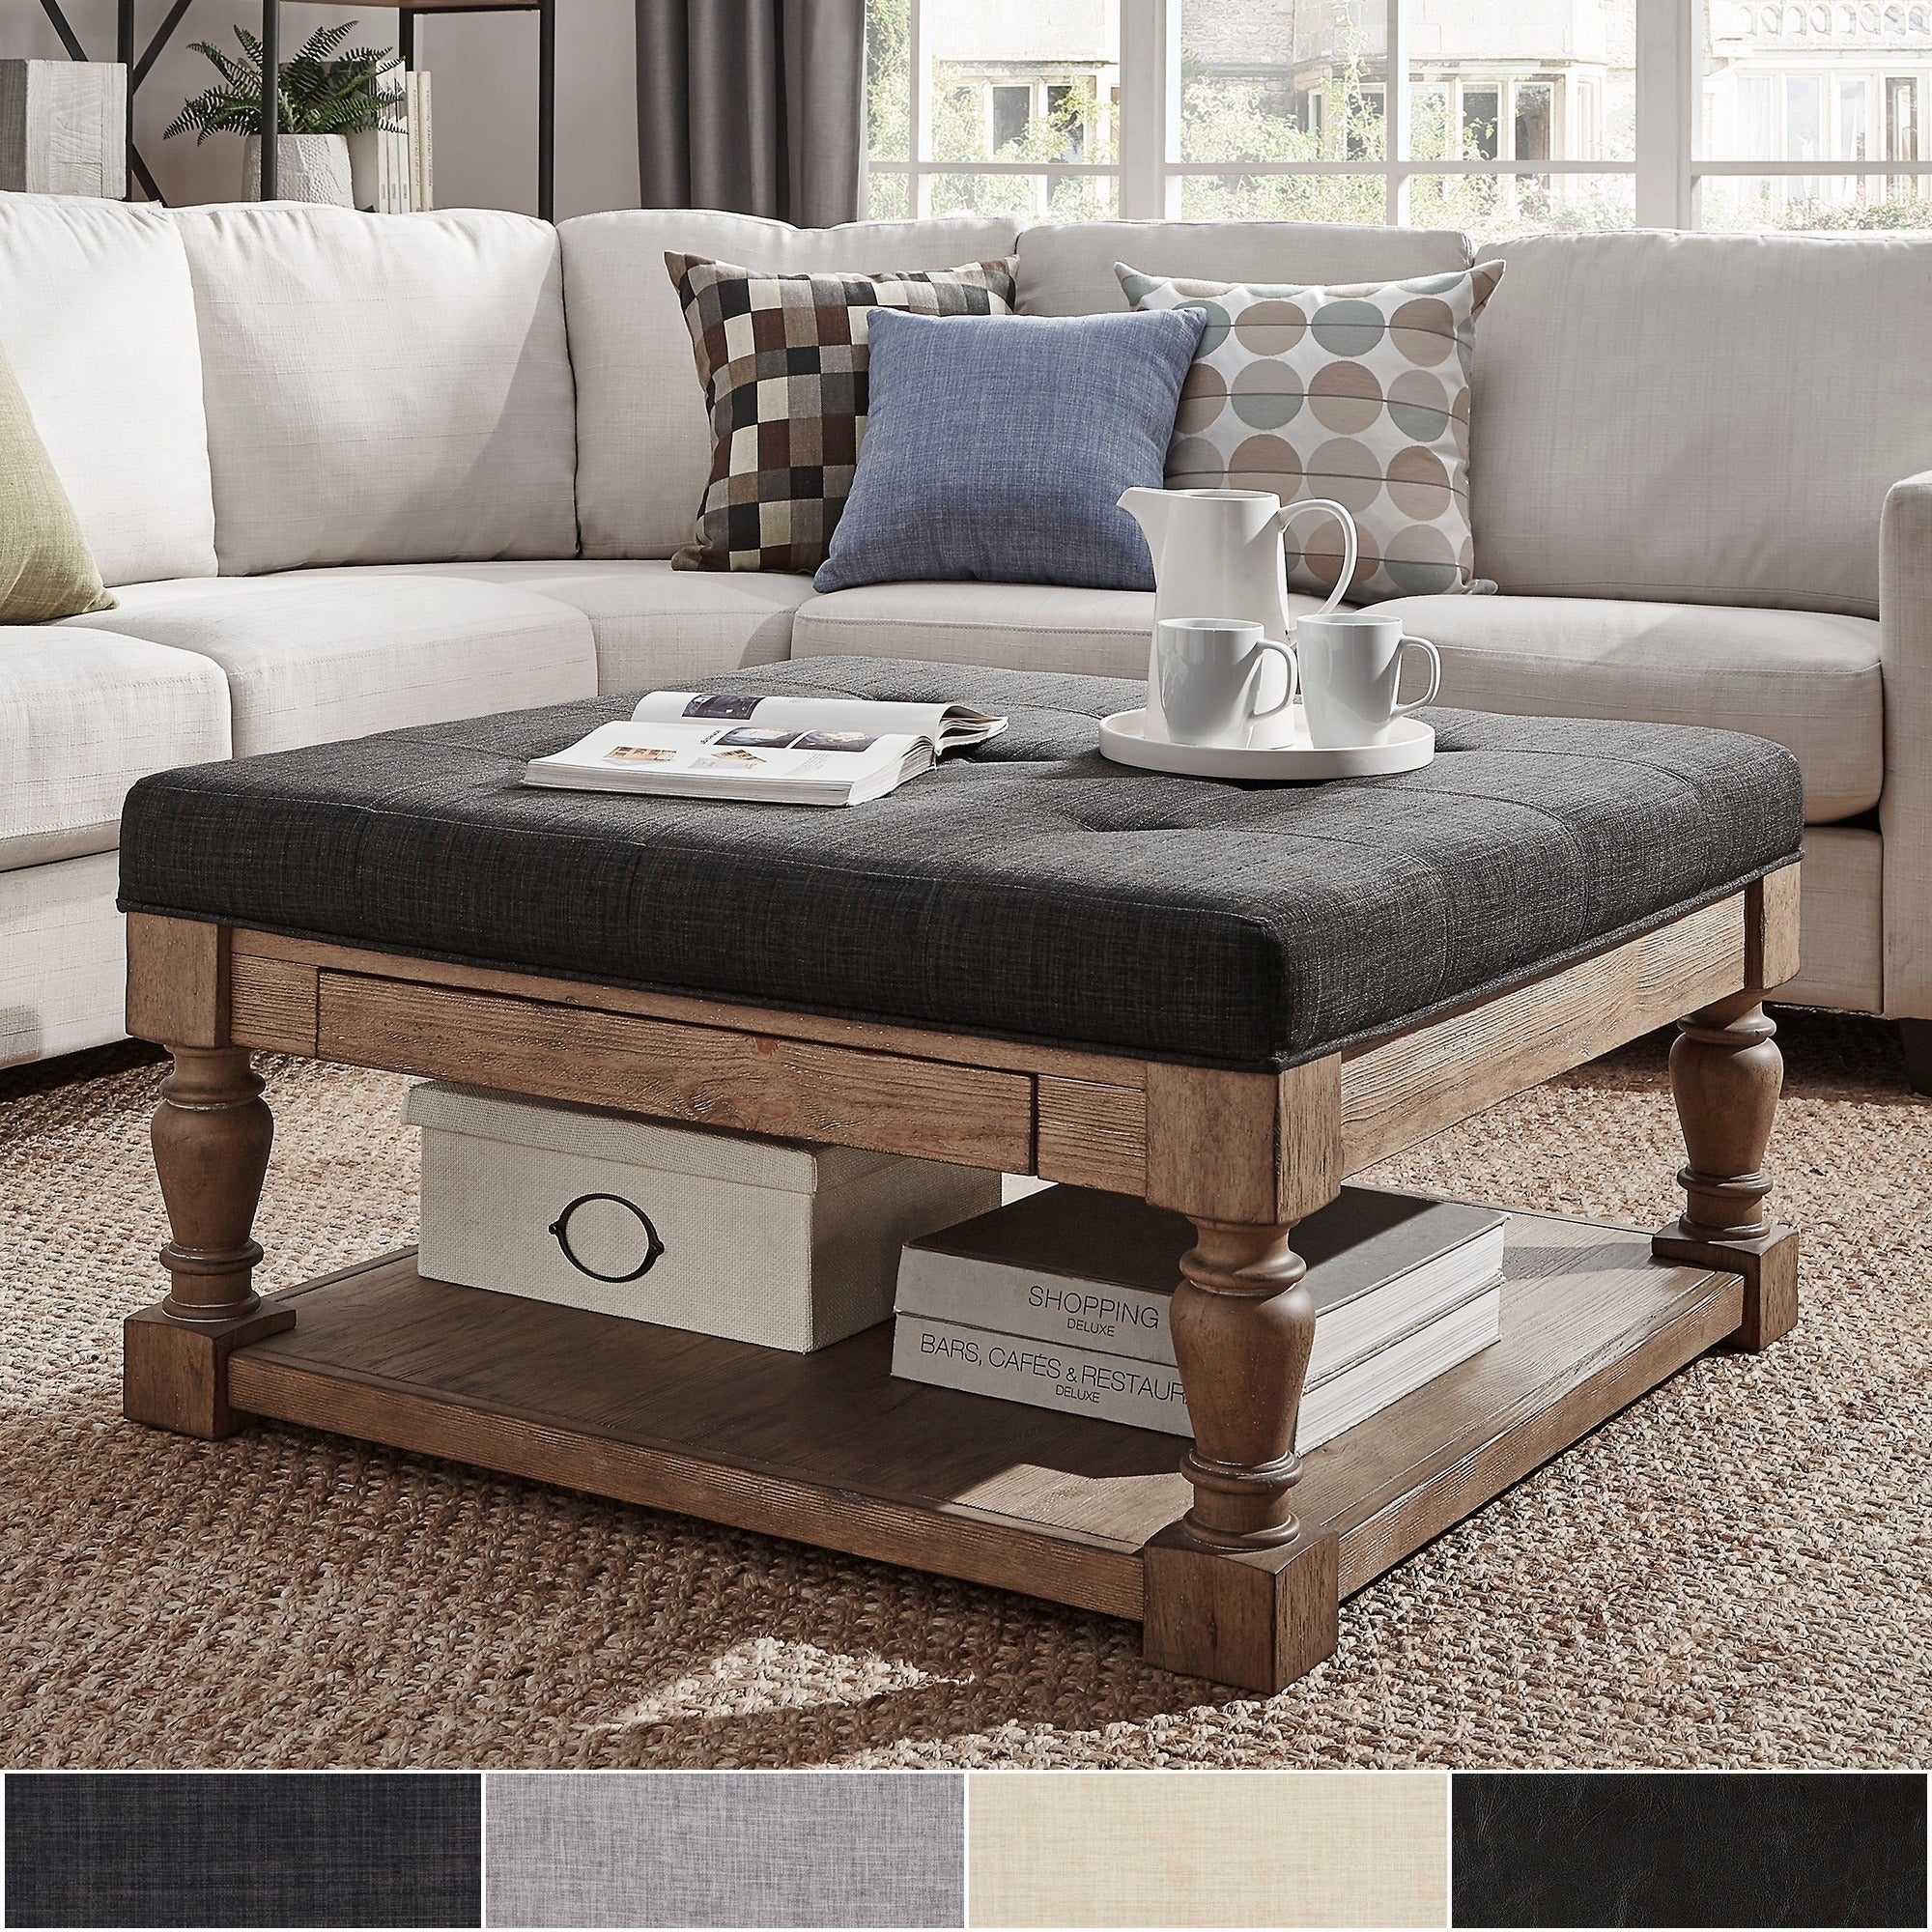 Ottoman For Coffee Table 7